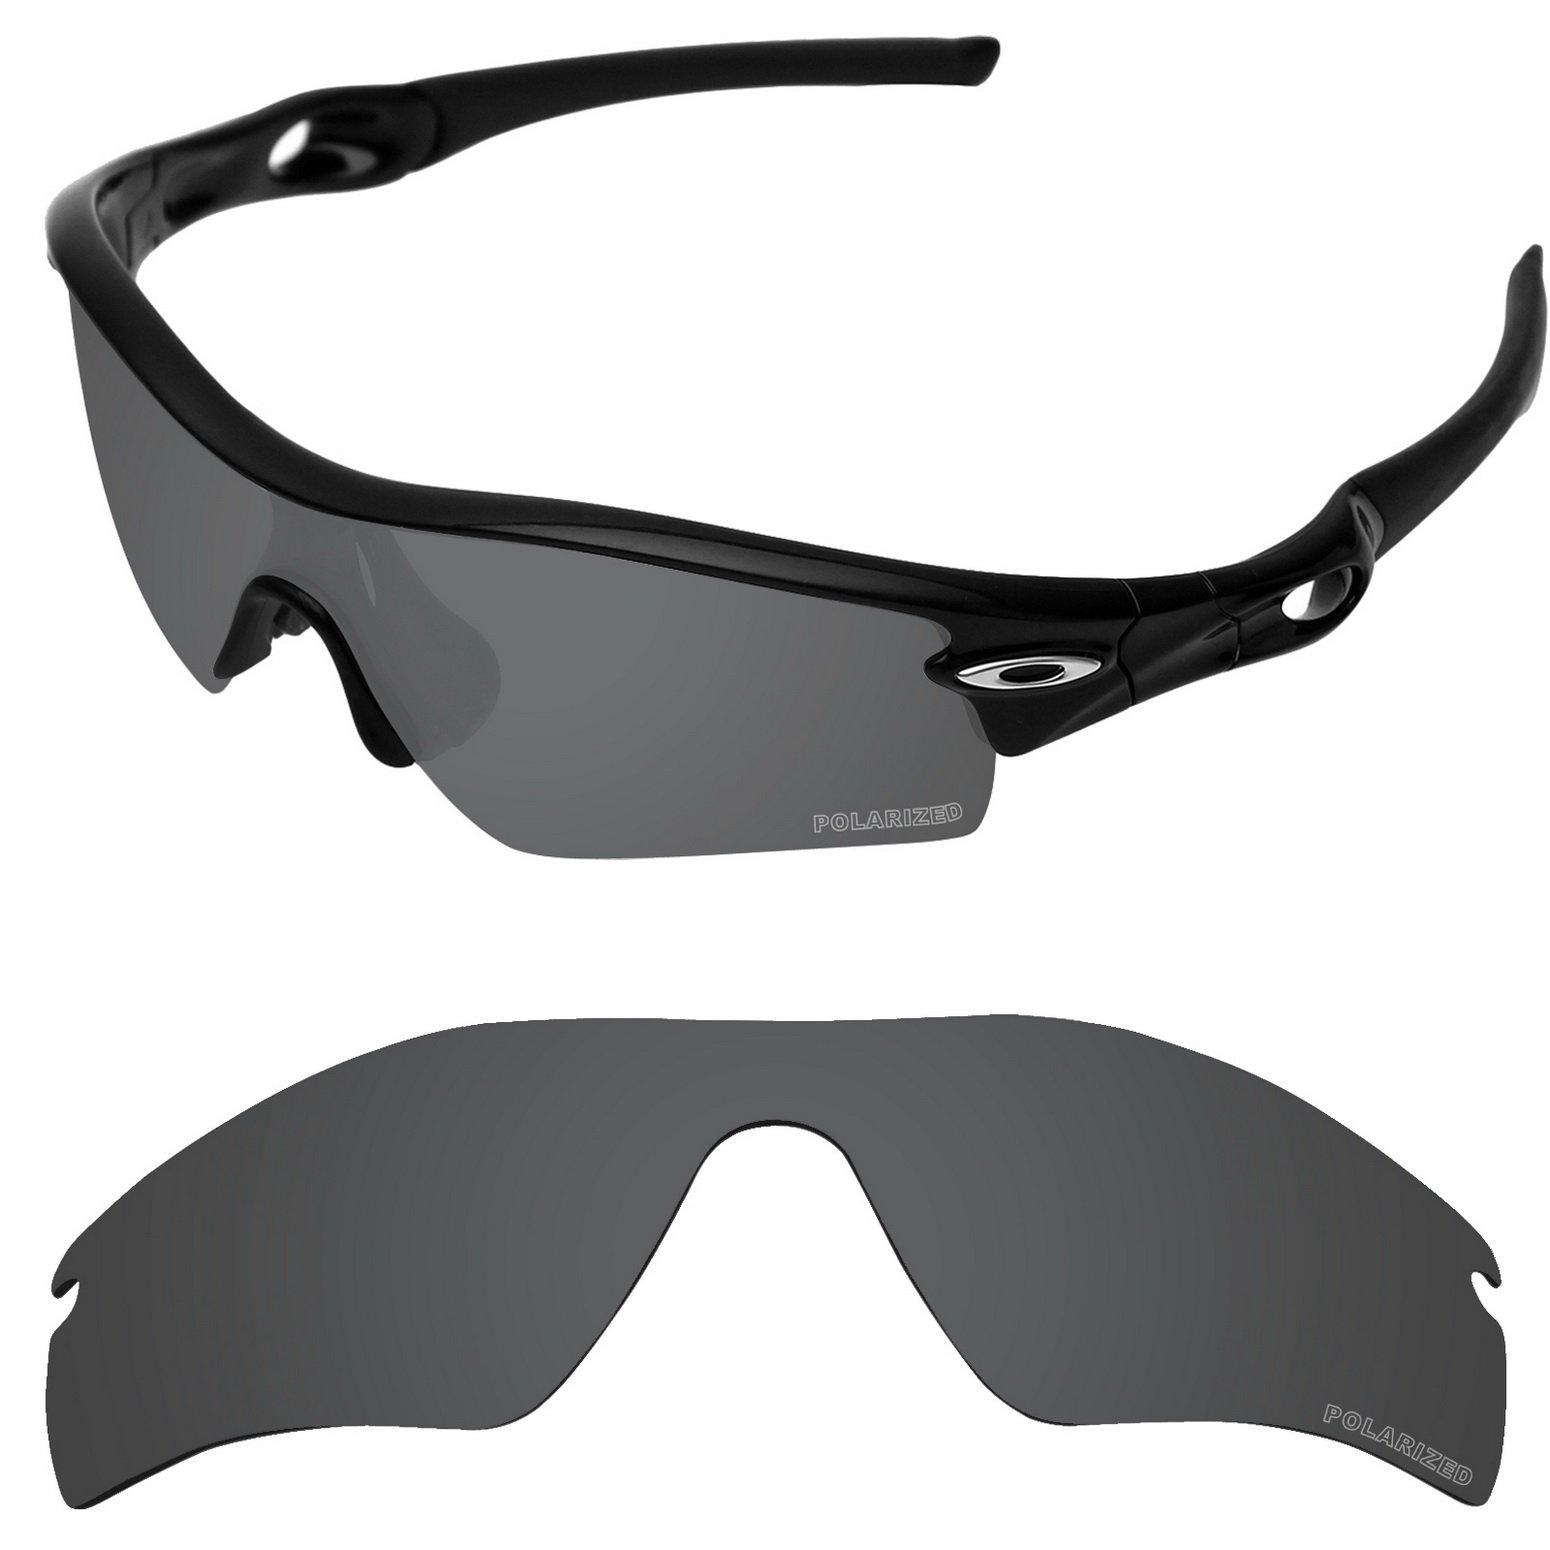 Tintart Performance Replacement Lenses for Oakley Radar Path Sunglass Polarized Etched-Carbon Black